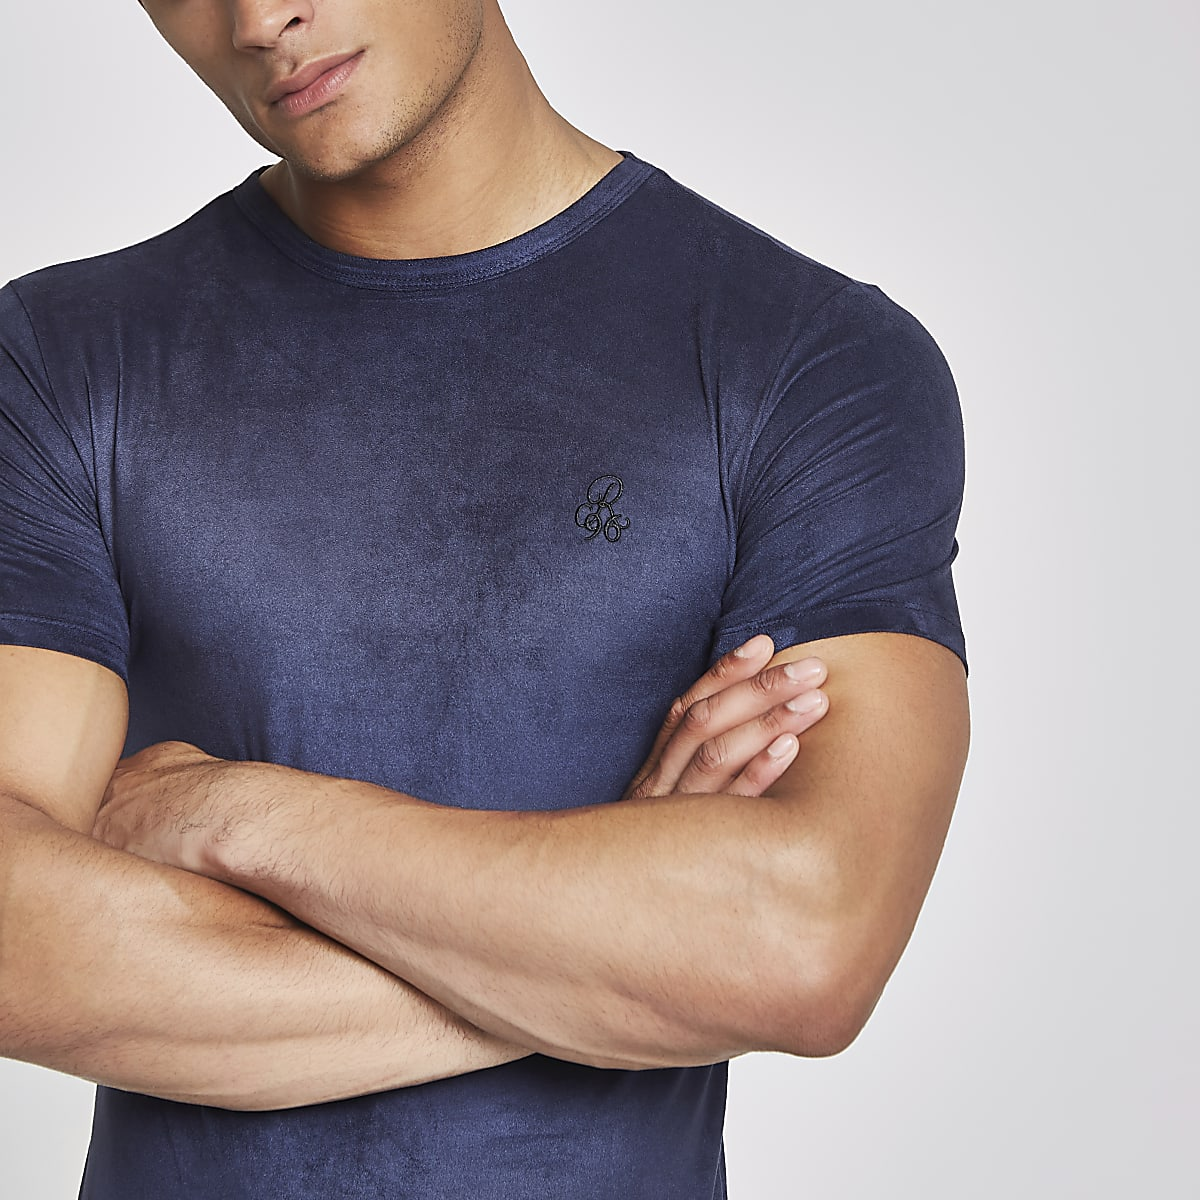 R96 navy suede muscle fit T-shirt